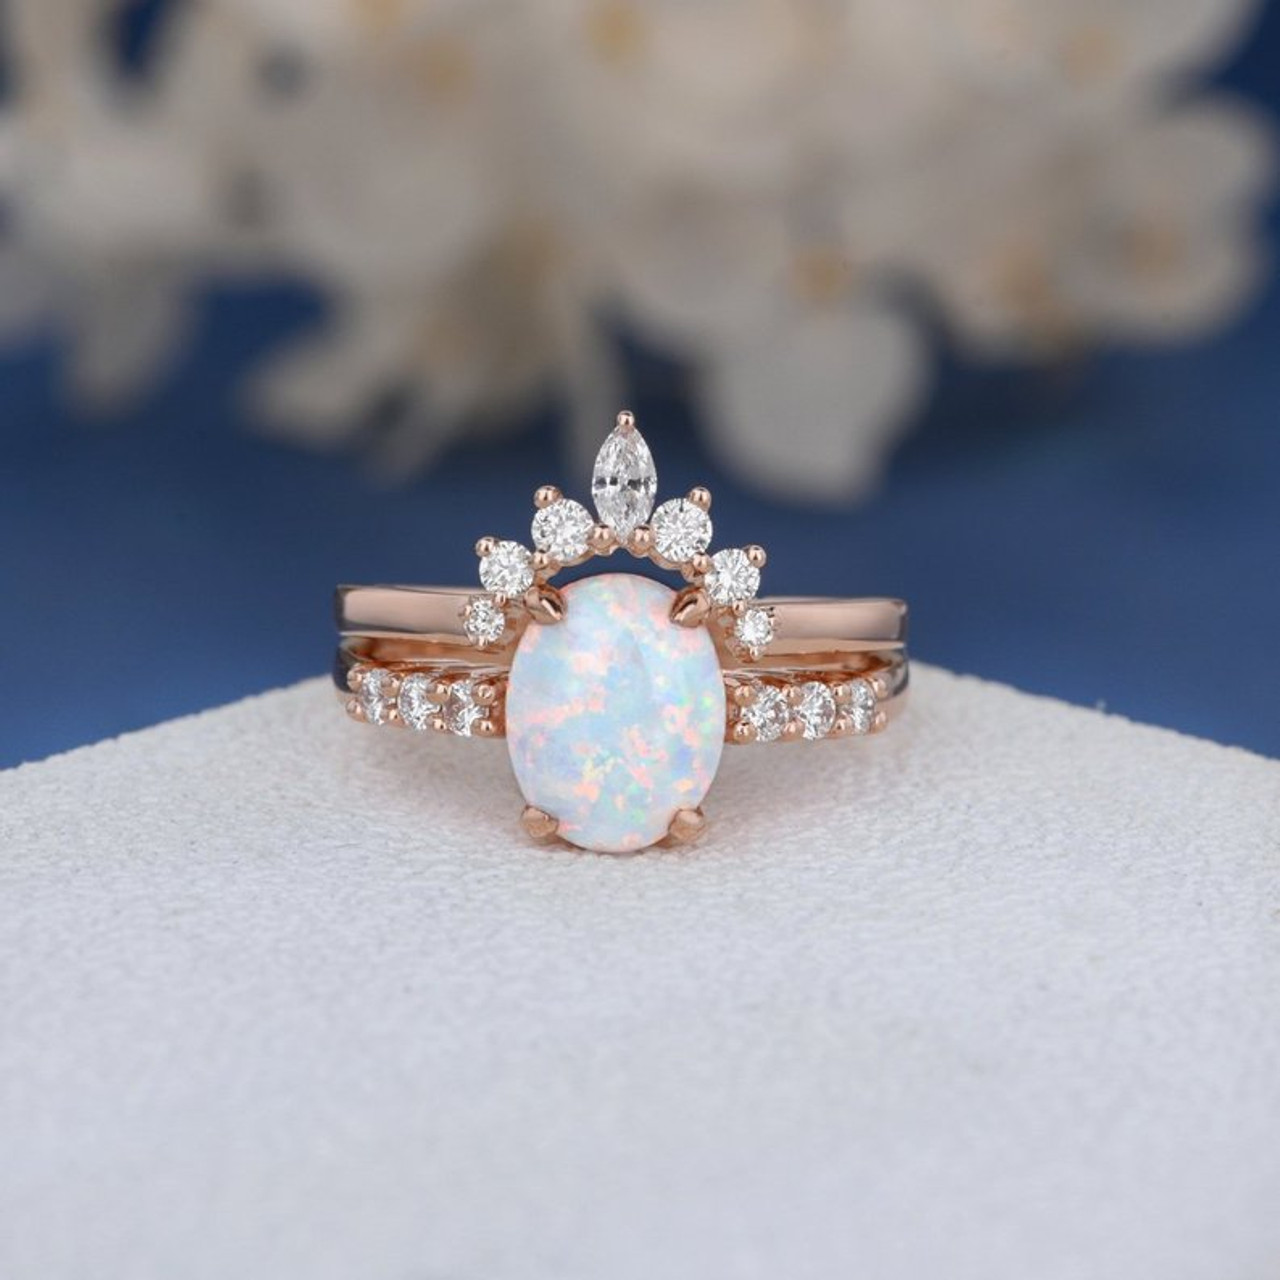 Antique Lab Opal Engagement Ring Set Bridal Set Rose Gold Unique Natural  Marquise Diamond Wedding Band Women Cluster Ring Oval Cut Opal 8pcs